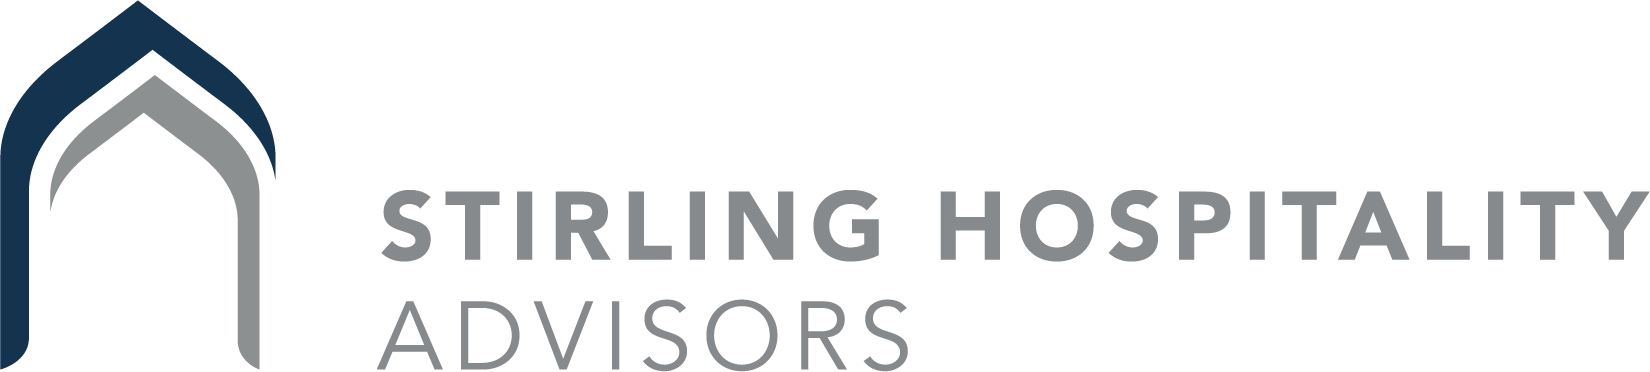 Stirling Hospitality Advisors | Hotel Consulting Services in UAE & Globally